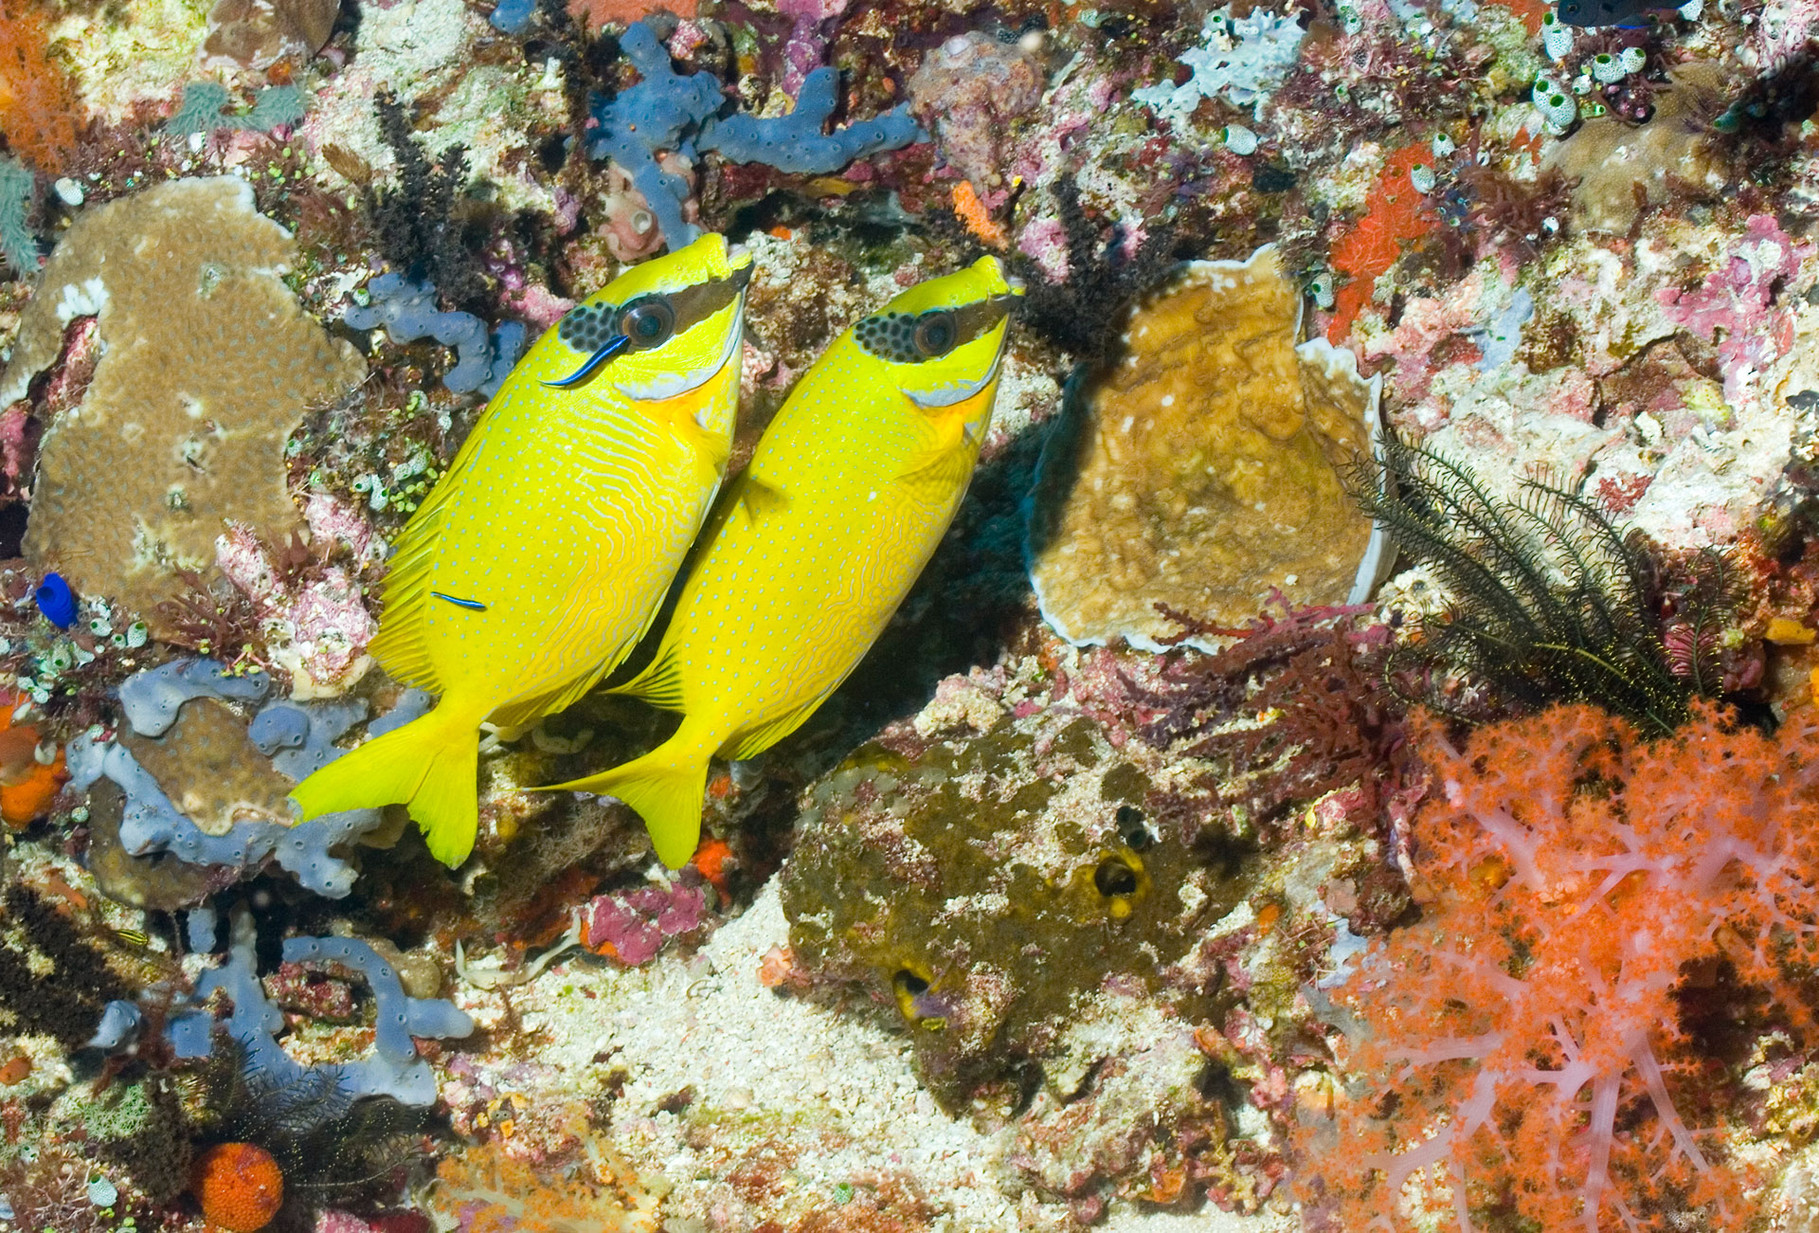 Rabbitfishes